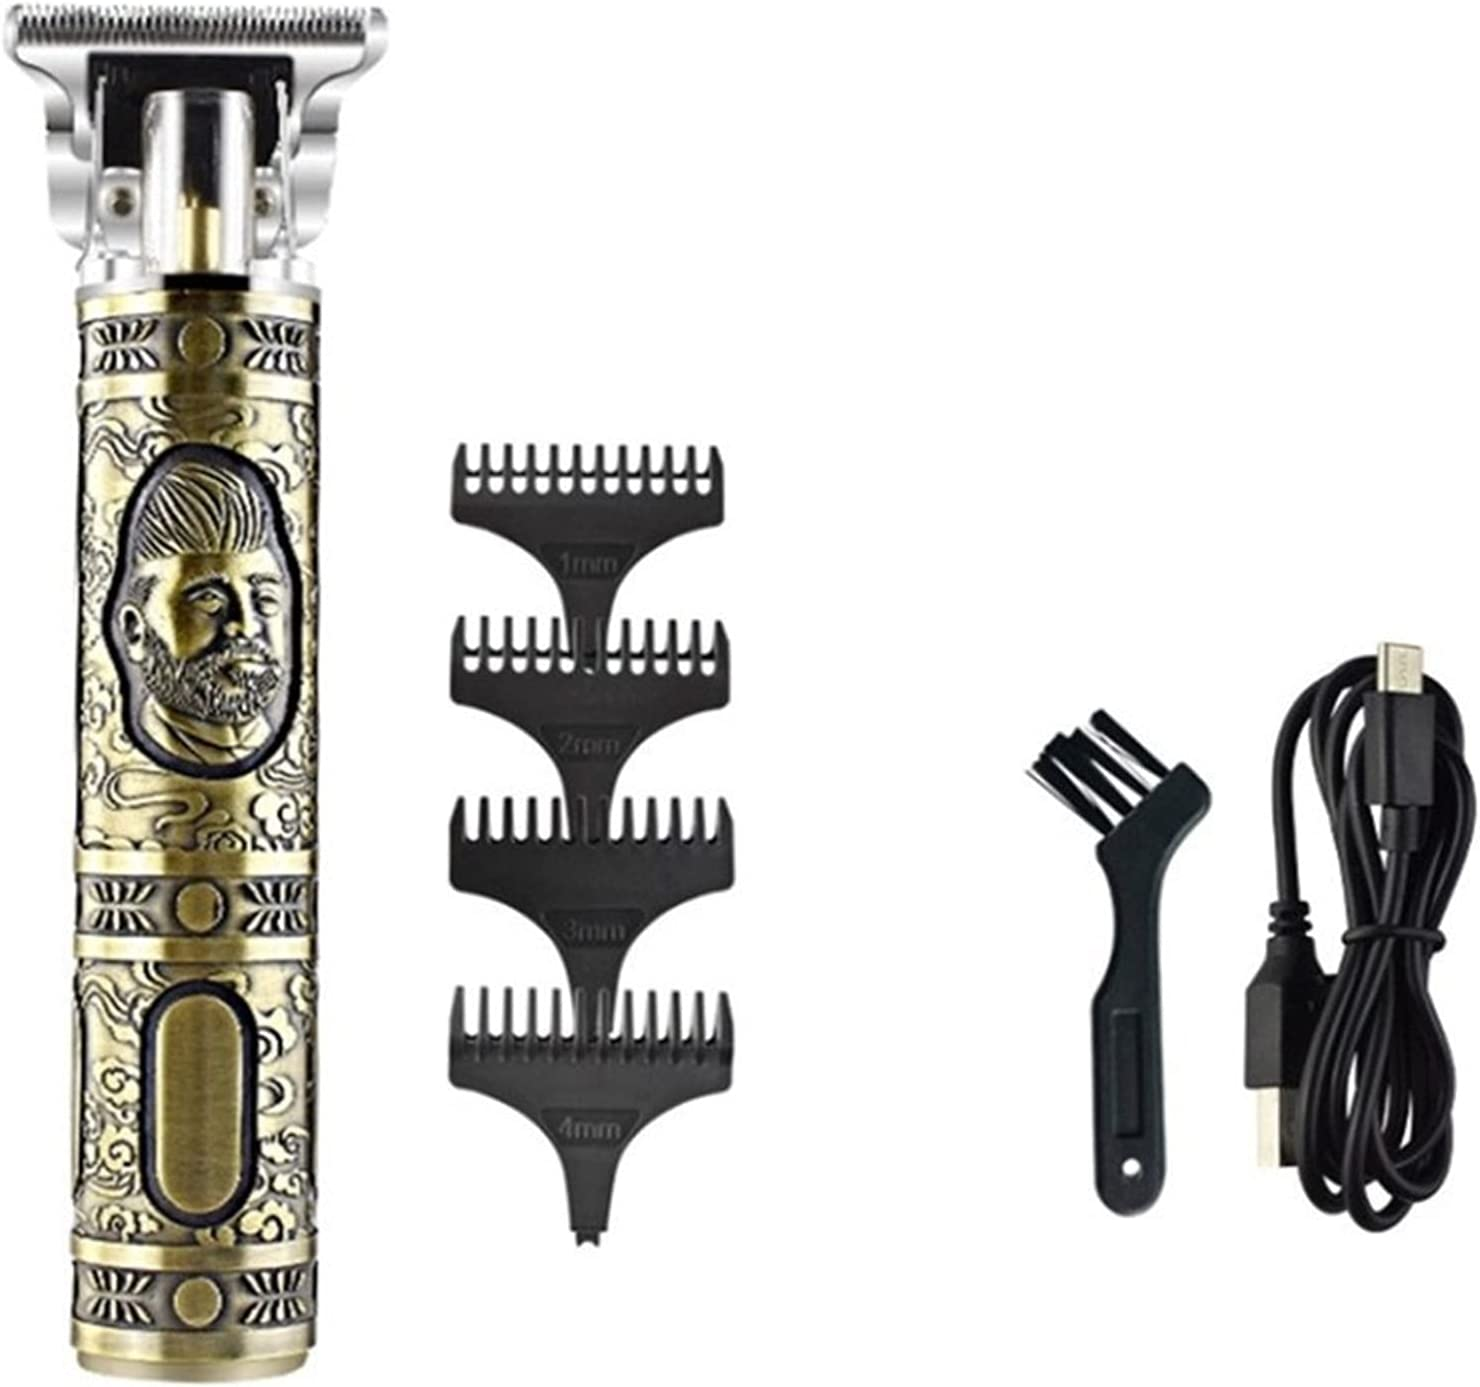 SHUYANshiyu Hair Clipper Universal T Trimmer Genuine At the price of surprise Clipp Wireless